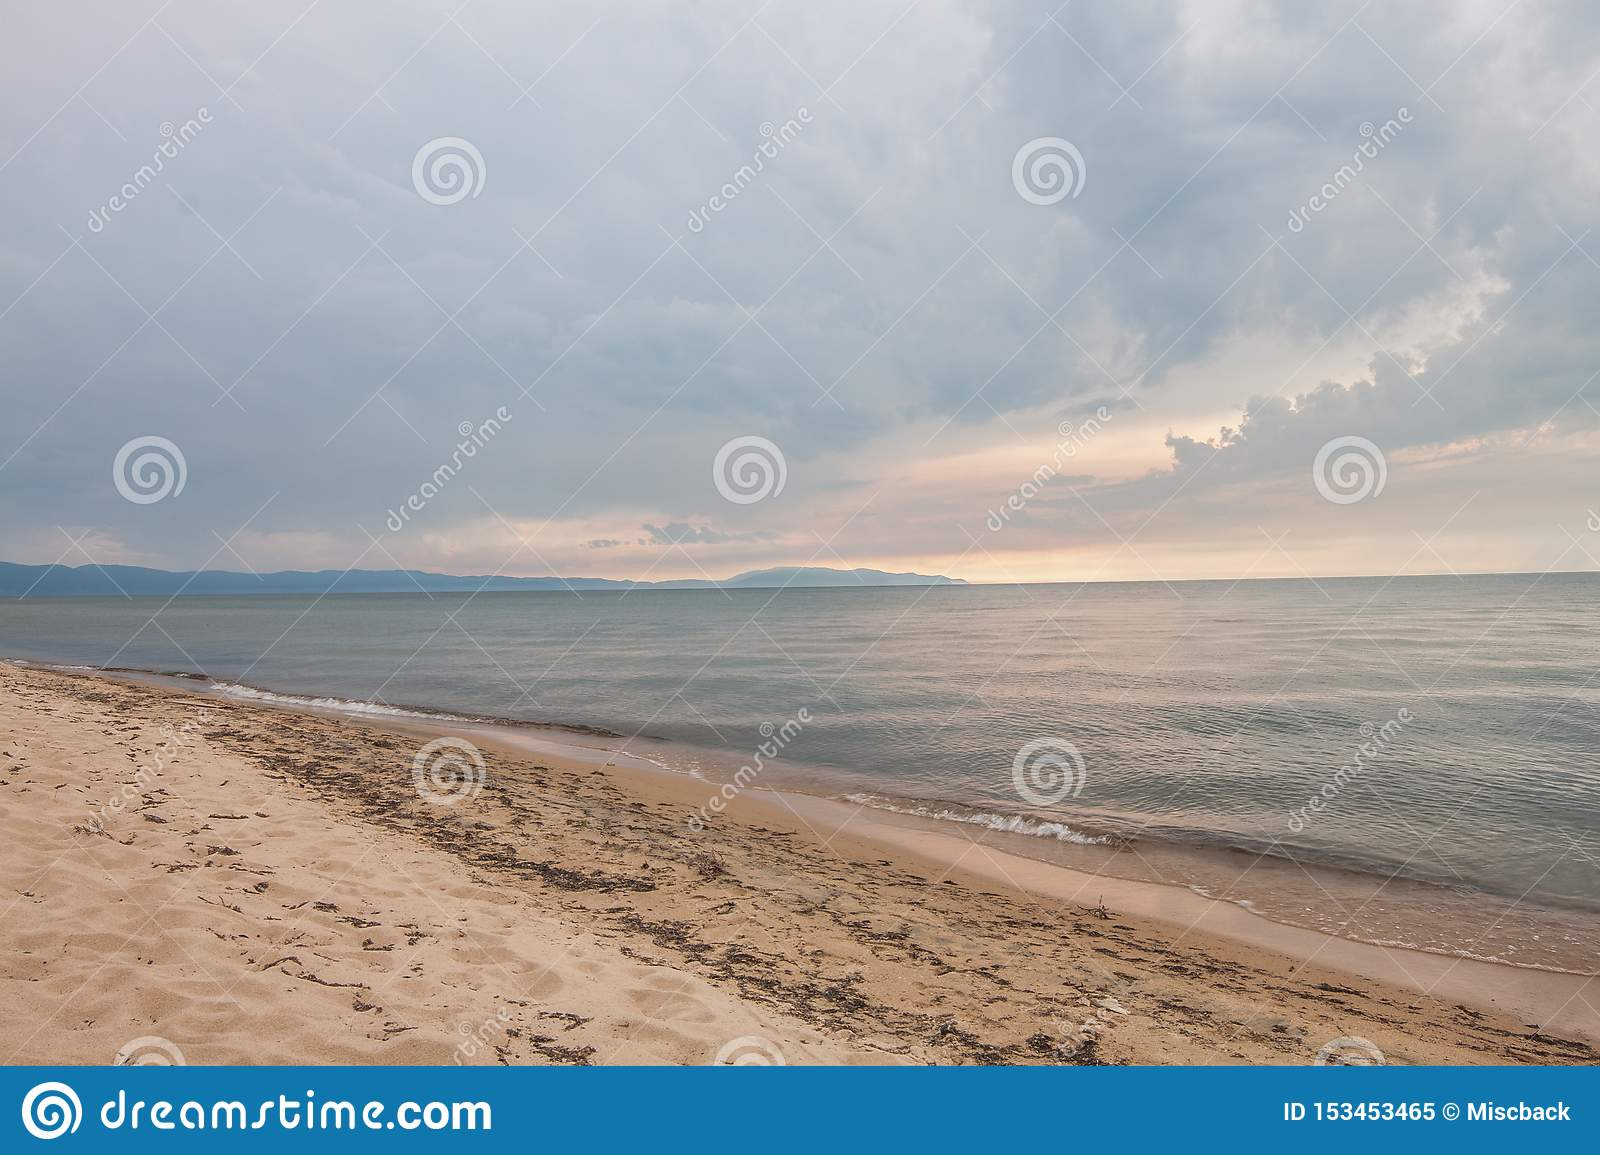 Beach on the sacred lake Baikal